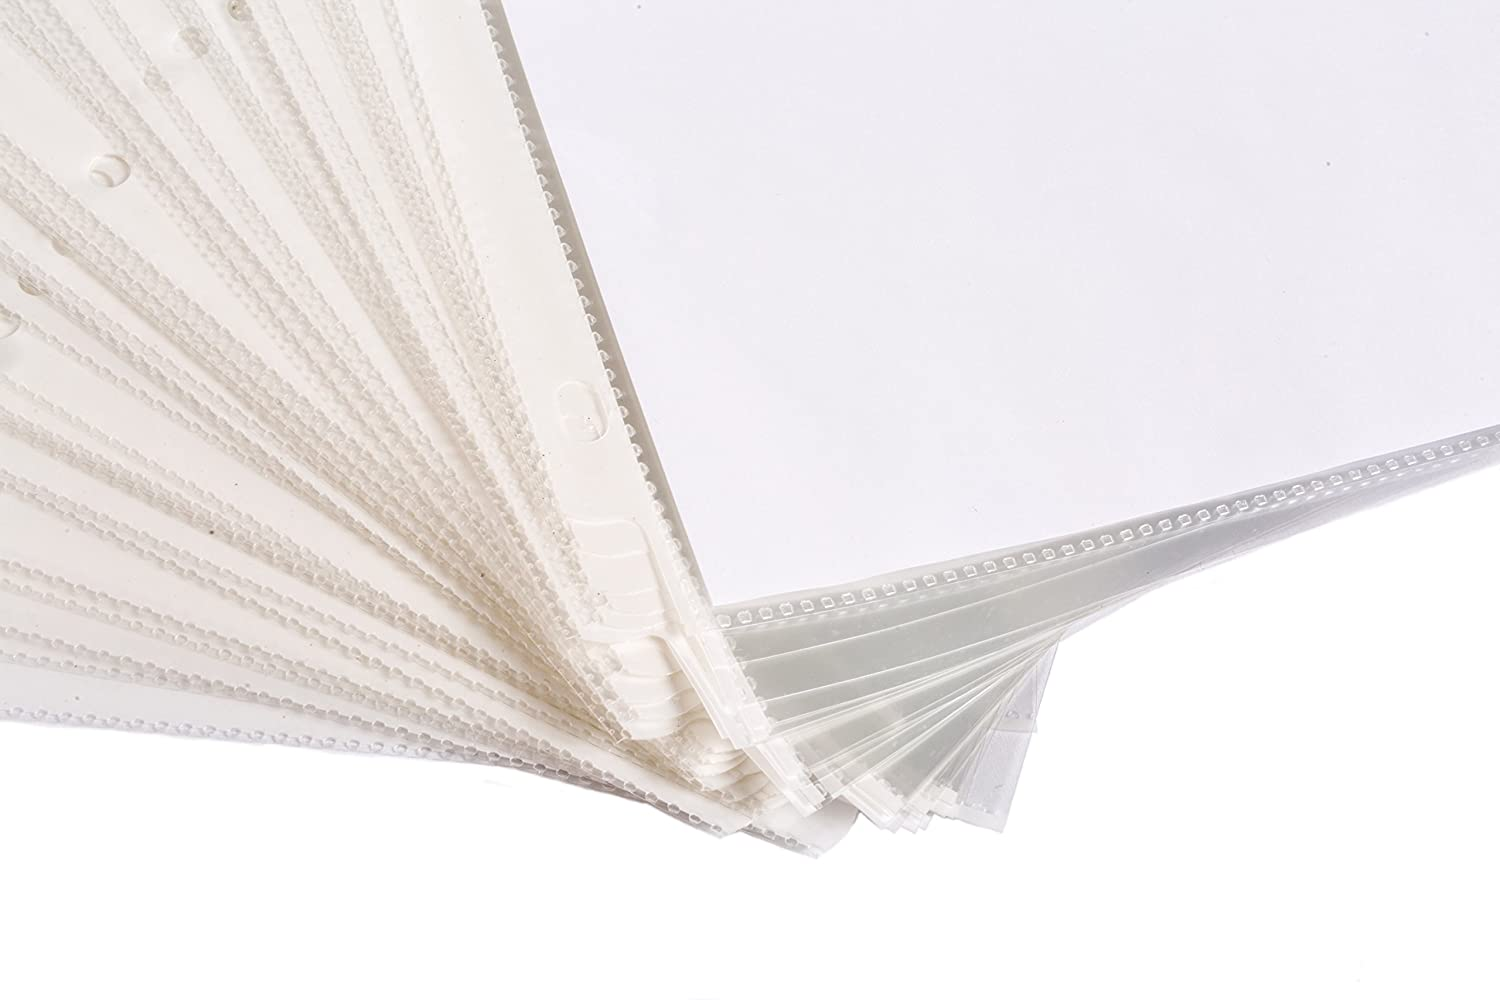 200 Heavyweight Sheet Protectors 200 Pack Reinforced 3 Hole Design with 3 MIL Thickness 9.25 x 11.25 Top Loaded Fits Standard 8.5 x 11 Paper